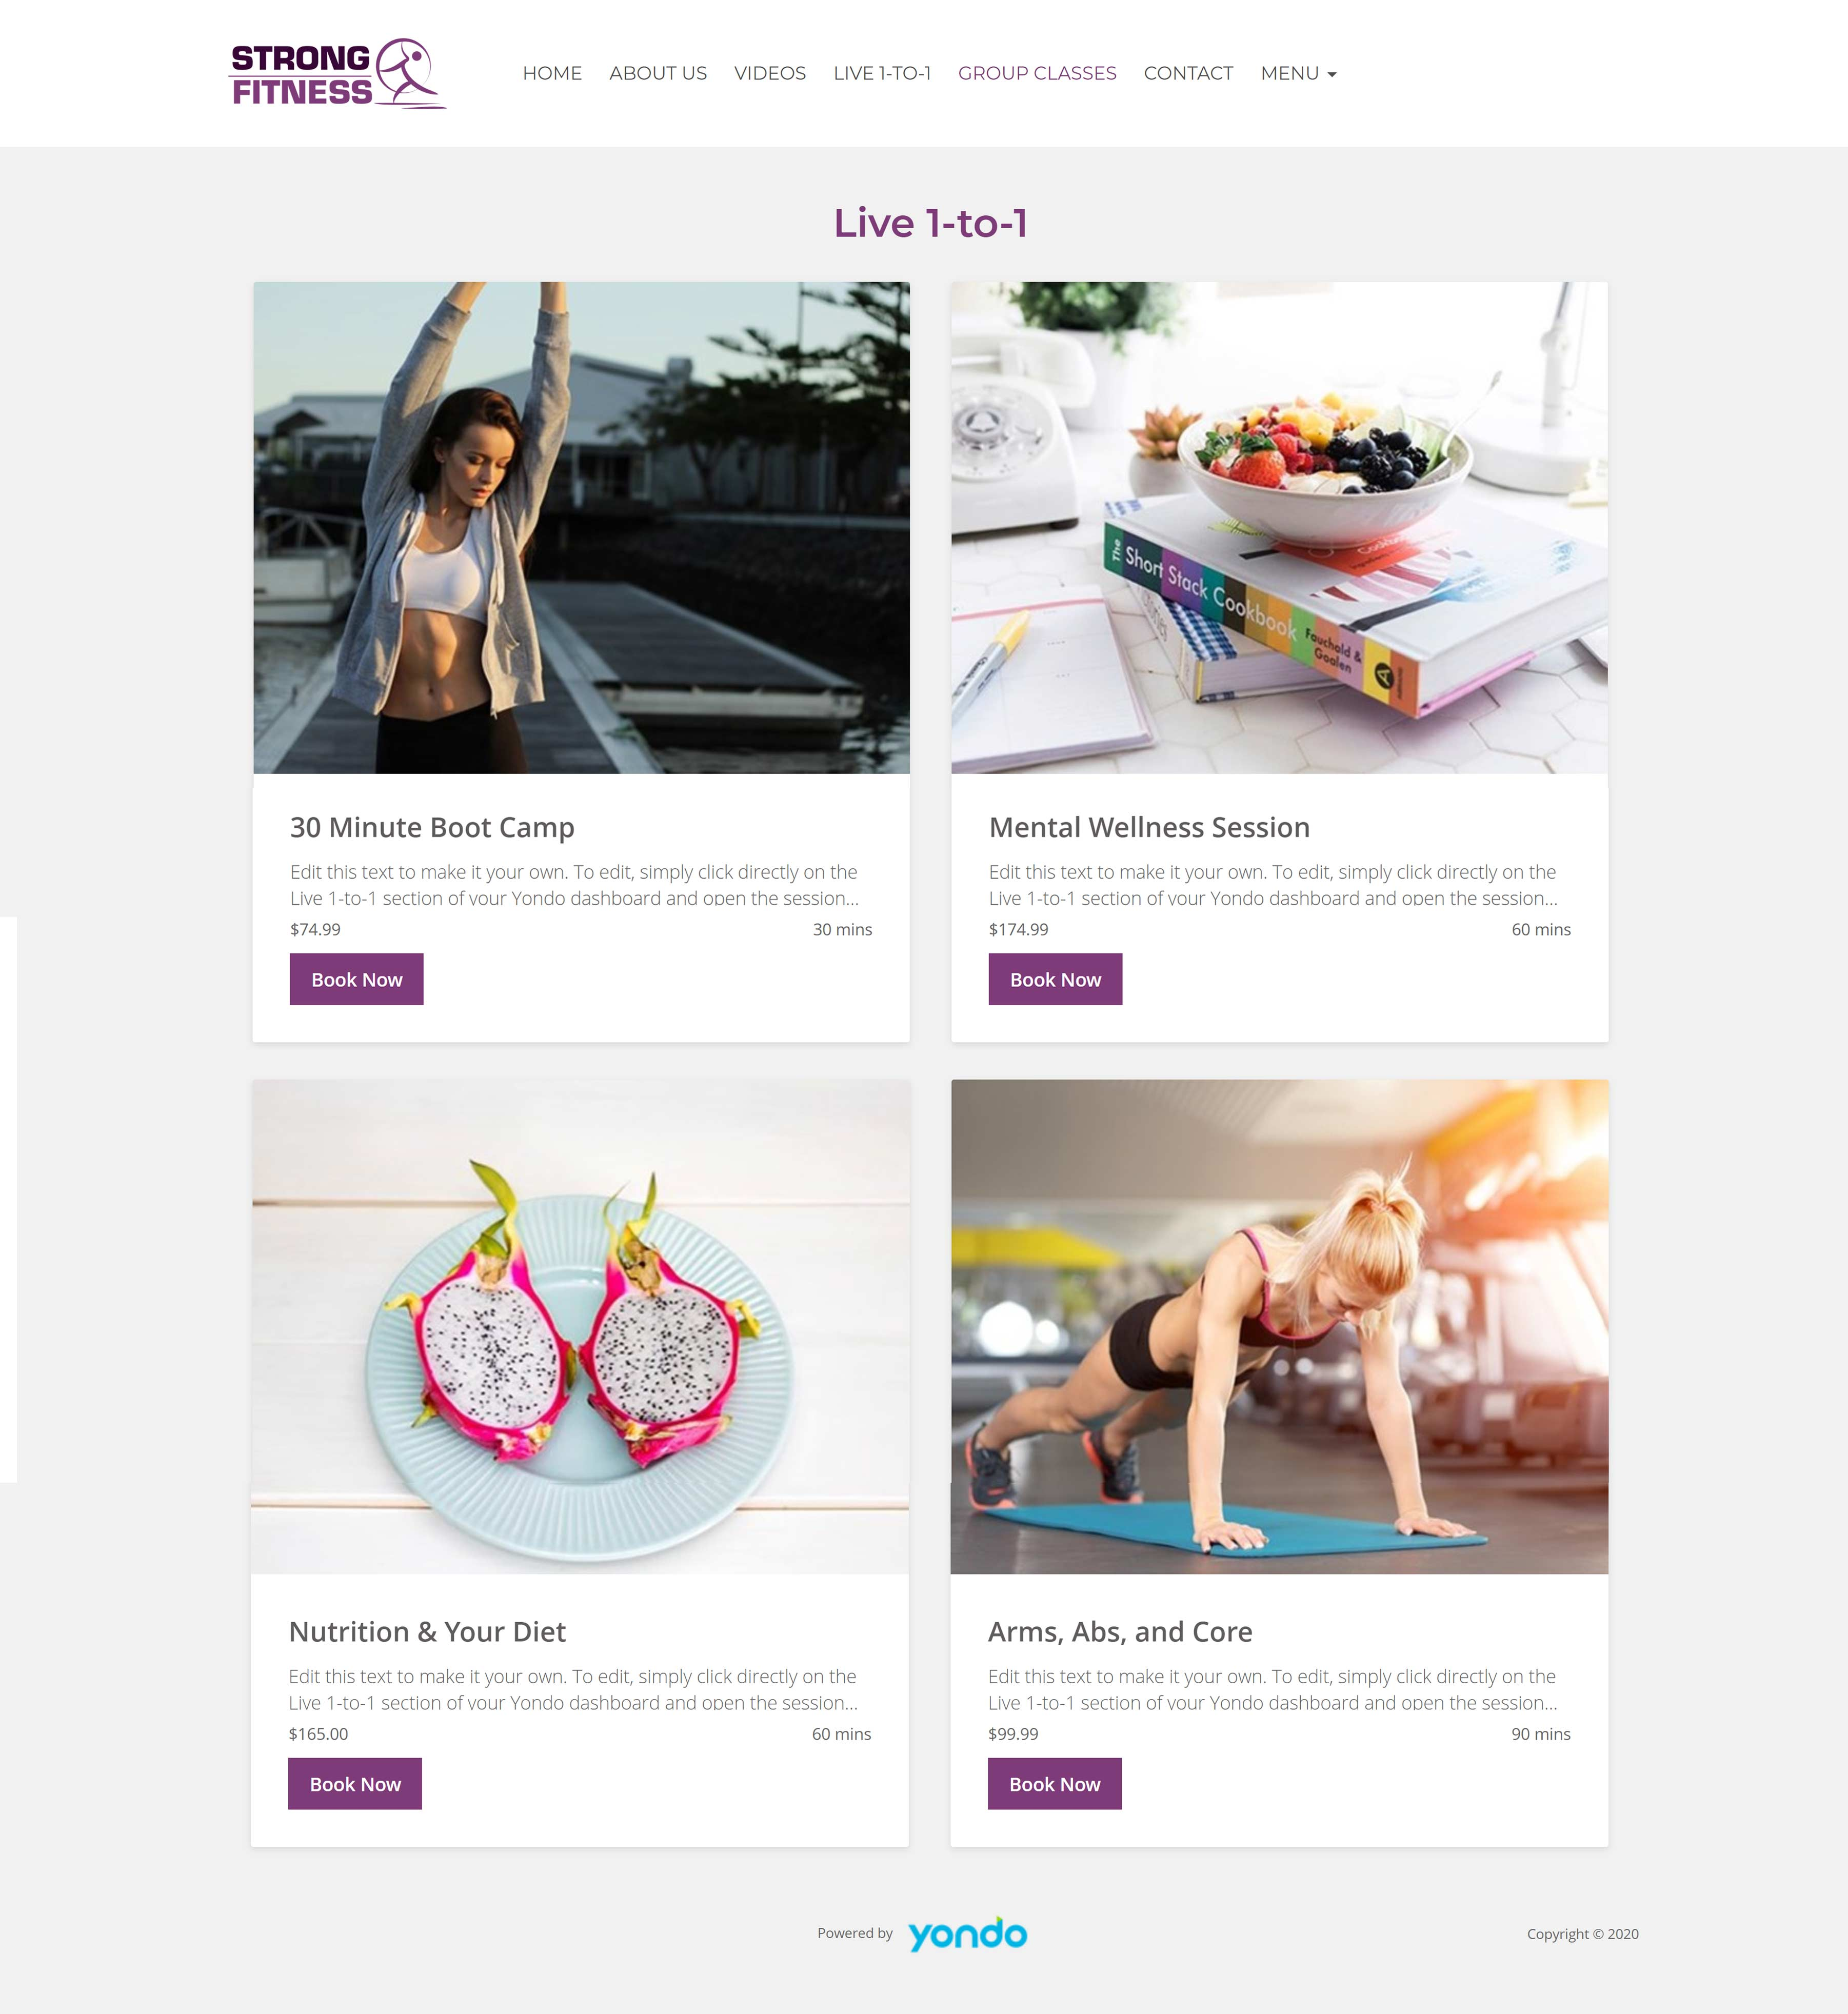 All-In-One Online Fitness Studio Website - Strong Fitness Live 1-To-1 Sessions Page Example